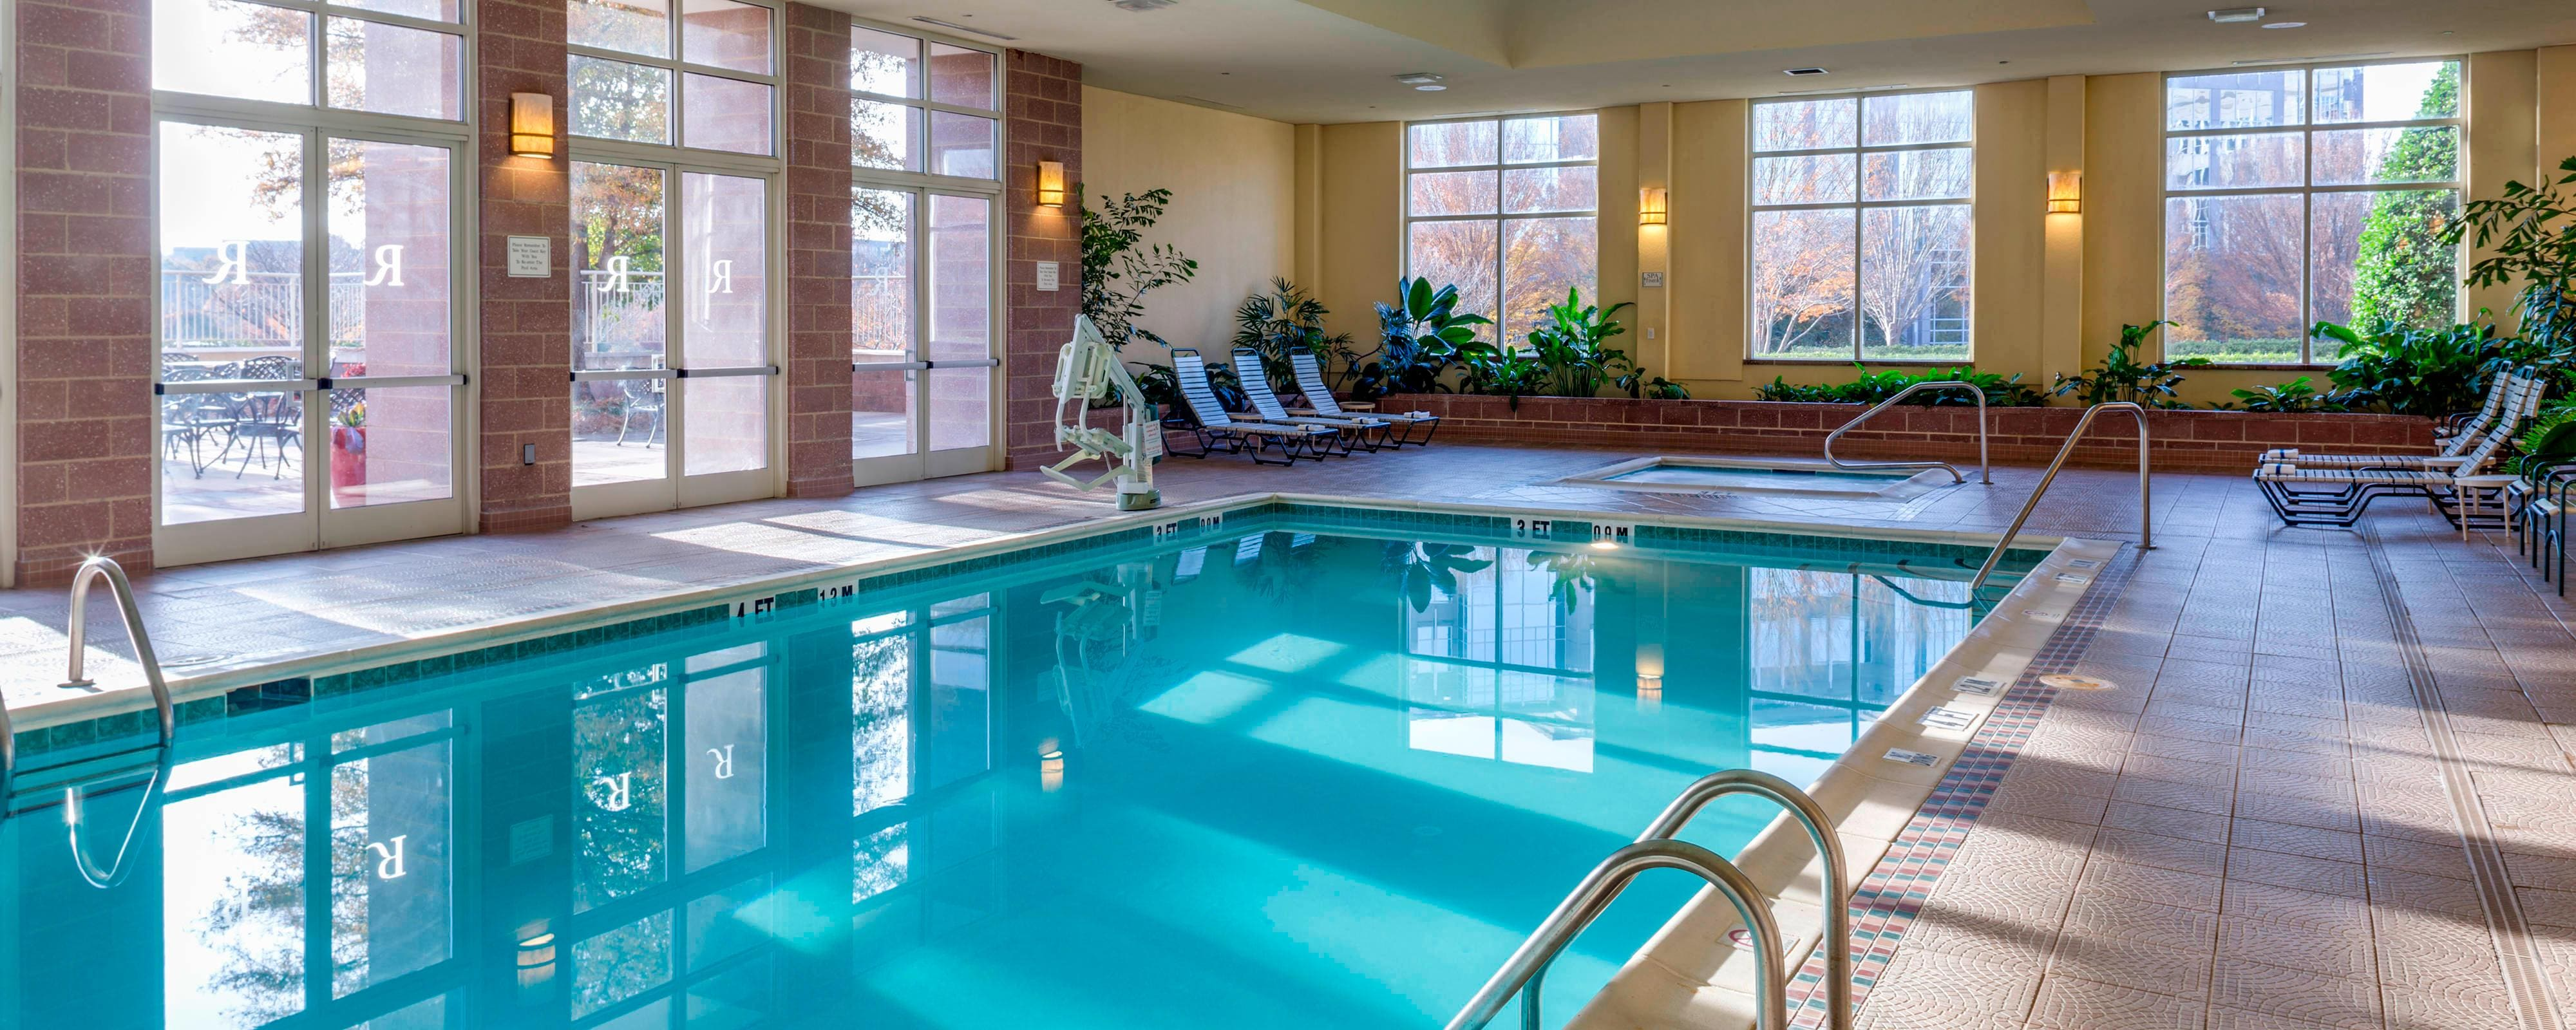 Hotels near charlotte airport with pool renaissance - Indoor swimming pools charlotte nc ...